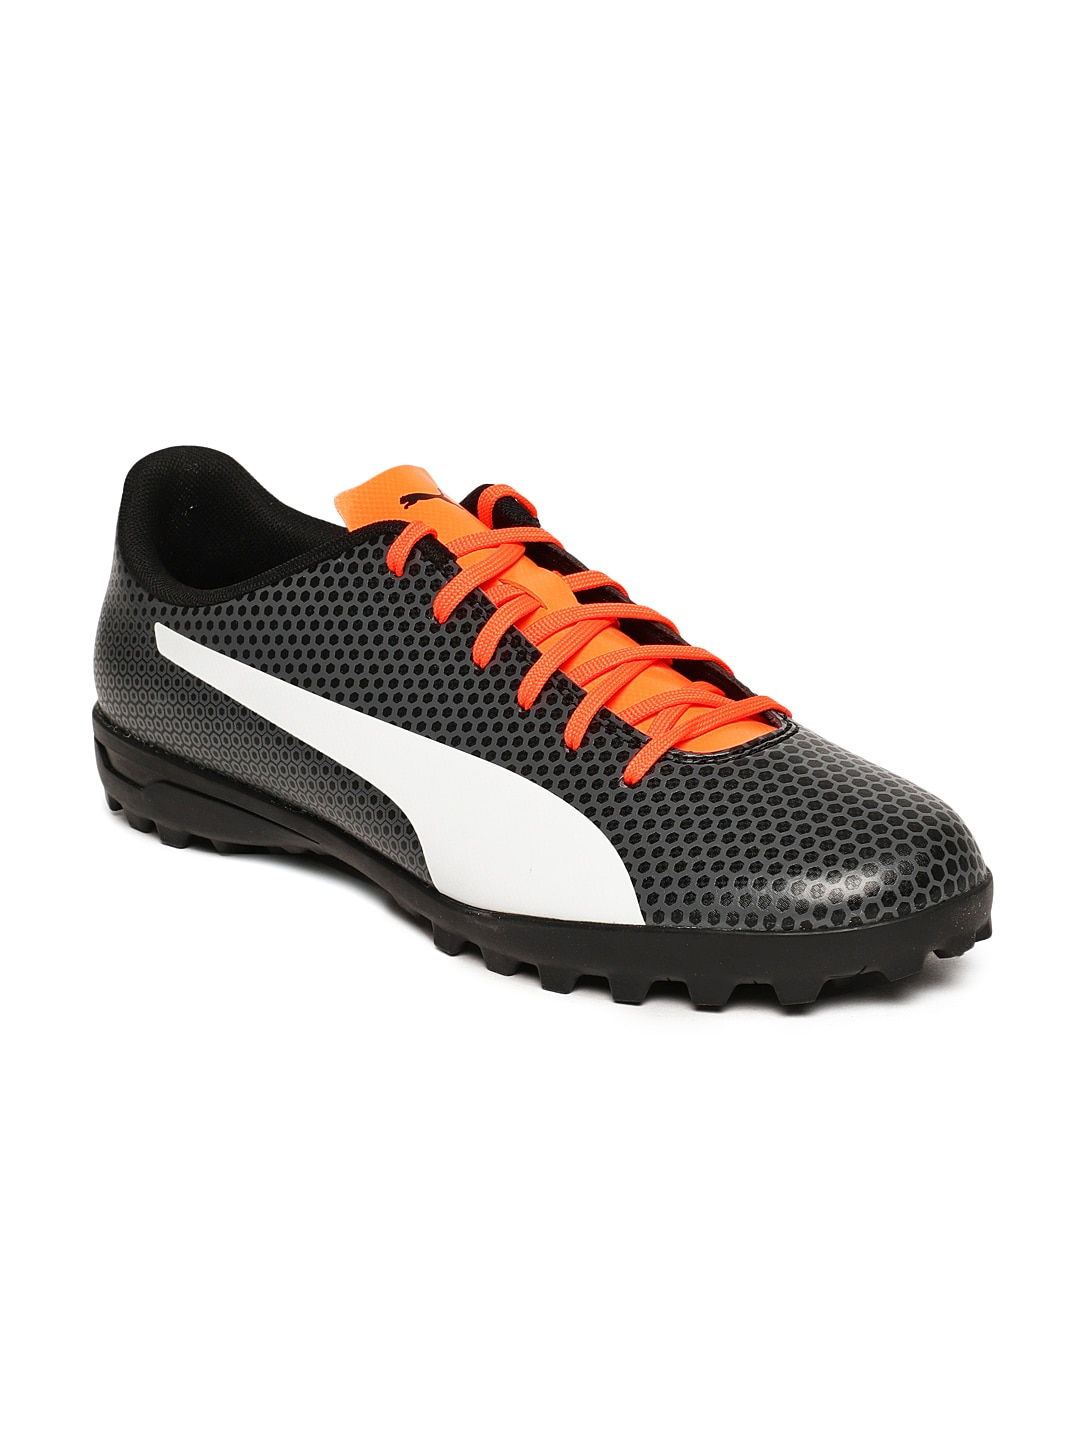 1f7cb472037 Puma Shoes - Buy Puma Shoes for Men   Women Online in India